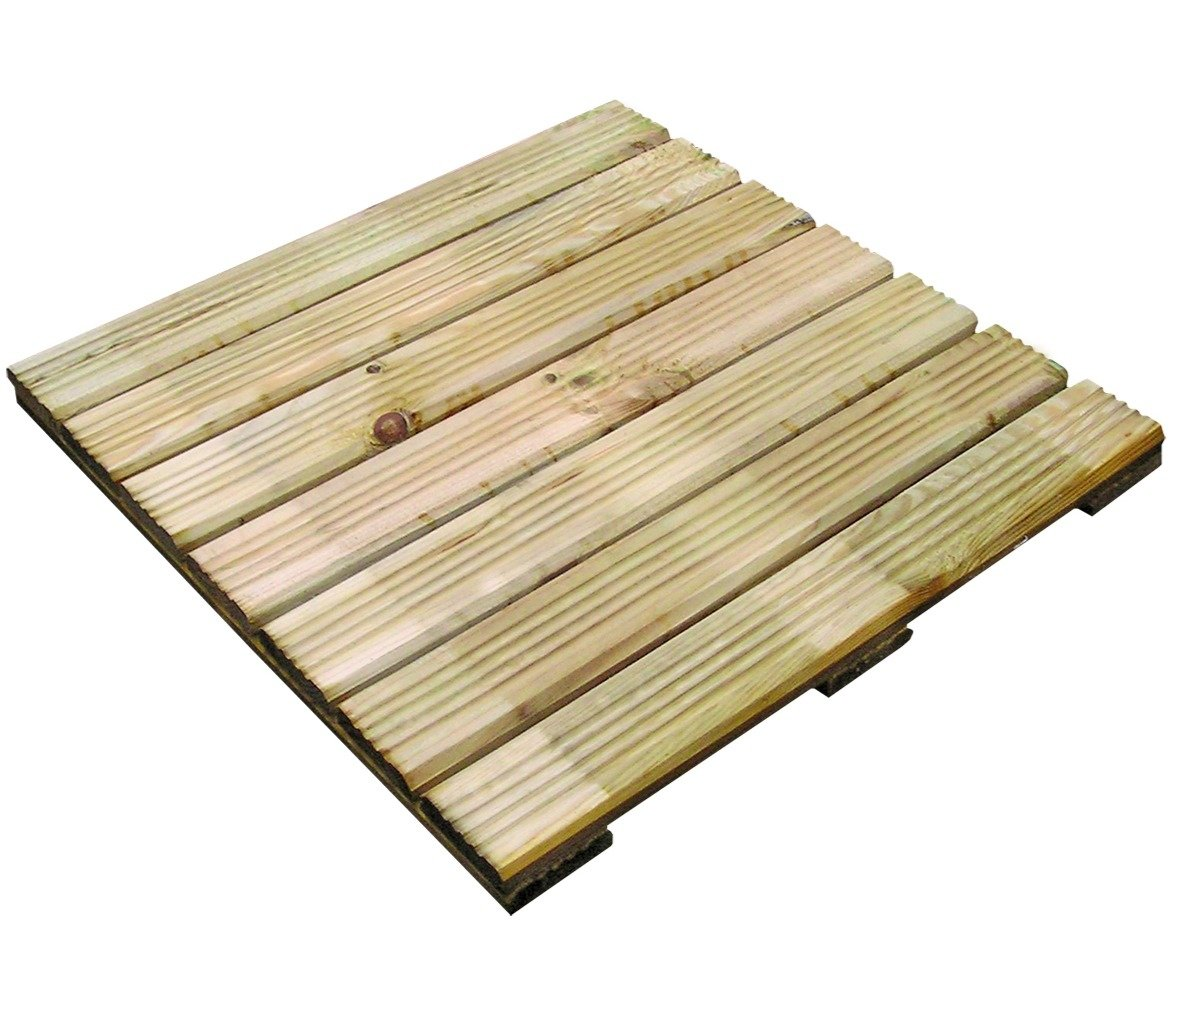 zest wooden decking tiles RHEMQBP